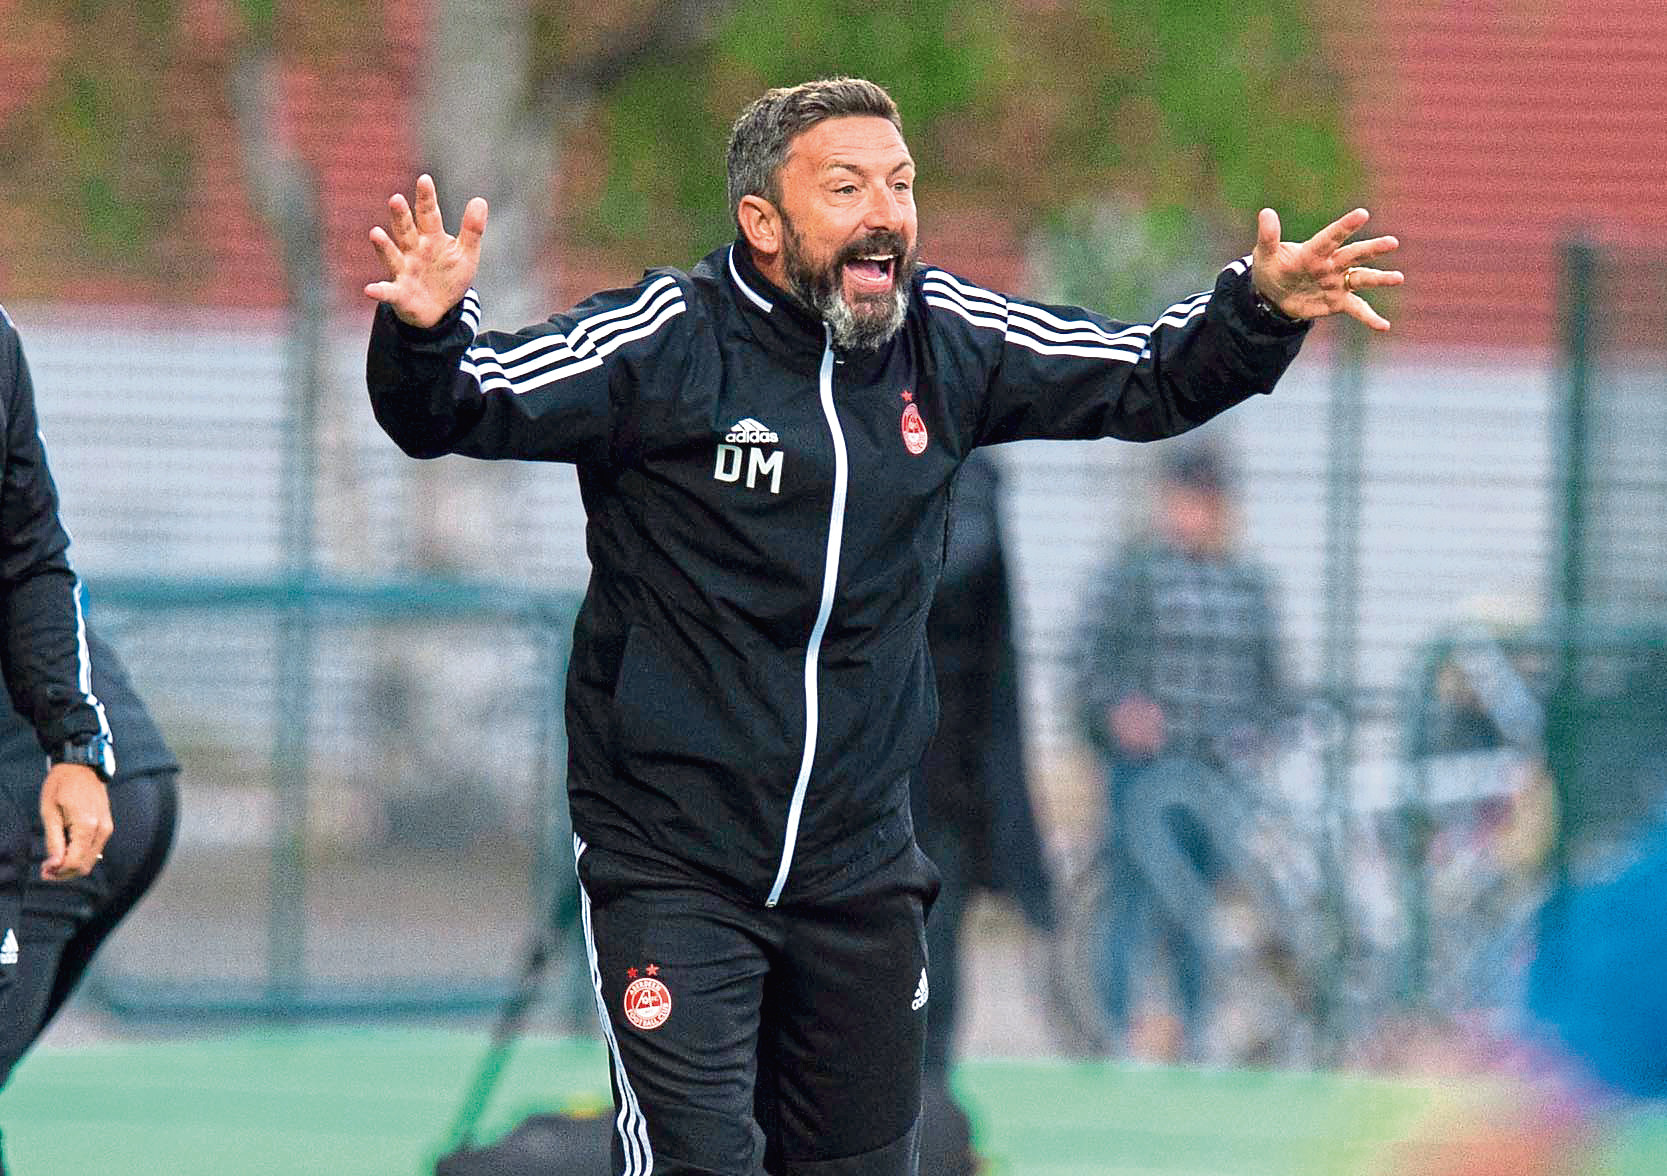 18/07/19 UEFA EUROPA LEAGUE QUALIFIER 1ST ROUND (2ND LEG) ROPS ROVANIEMI v ABERDEEN ROVANIEMEN KESKUSKENTTA - ROVAENIEMI Aberdeen manager Derek McInnes issues instructions from the sidelines.